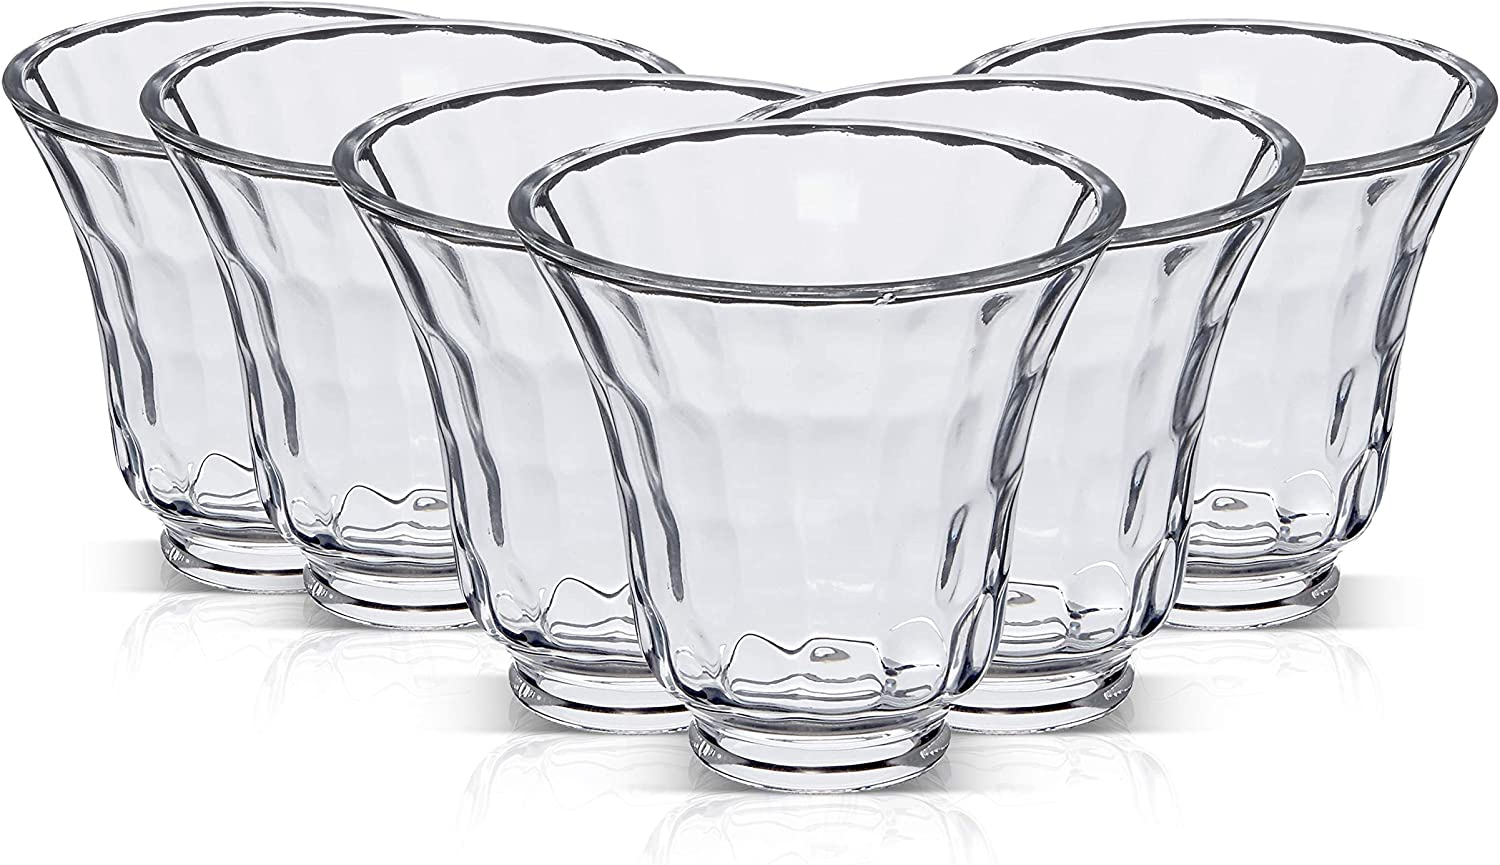 OhLectric OL-39742 Clear Cash special price Glass Bell Shade - Table 2 Inch La Arlington Mall ¼